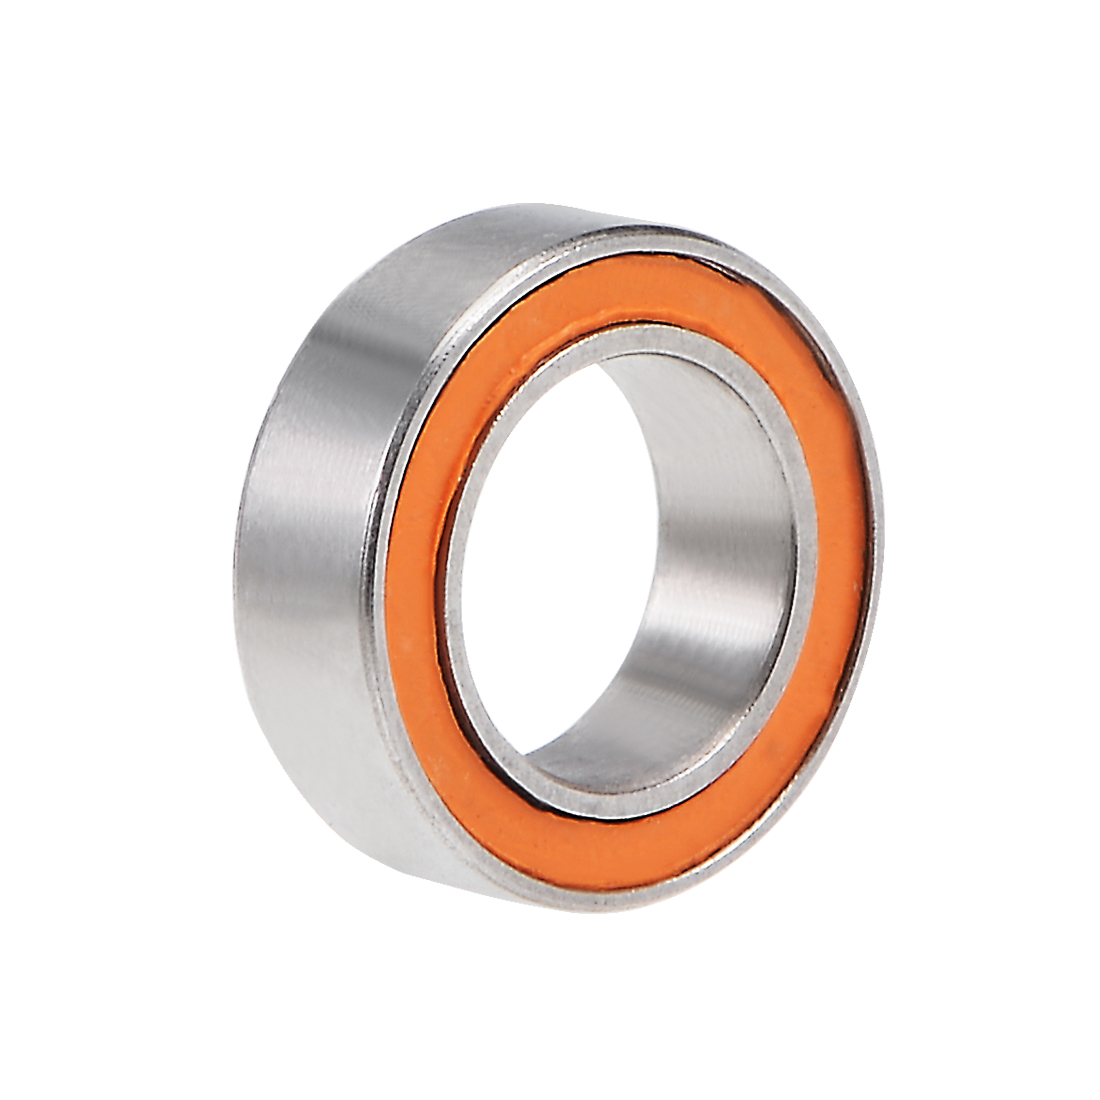 SMR85C-2OS Hybrid Ceramic Ball Bearing 5x8x2.5mm ABEC-7 Stainless Steel Bearings